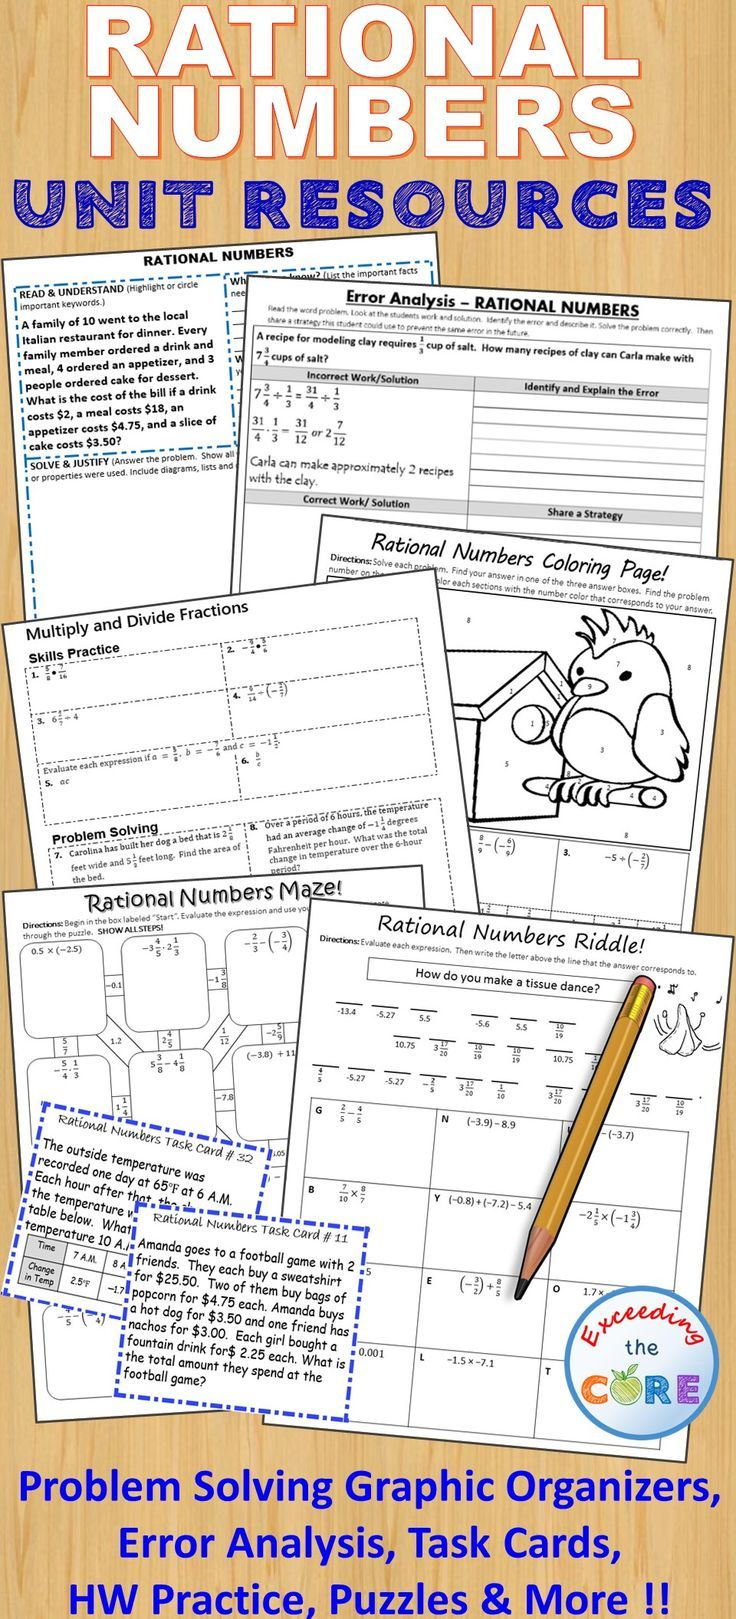 Worksheets Equations With Fractions Worksheet best 25 negative fractions ideas on pinterest rational numbers bundle task cards error analysis problem solving hw practice includes 40